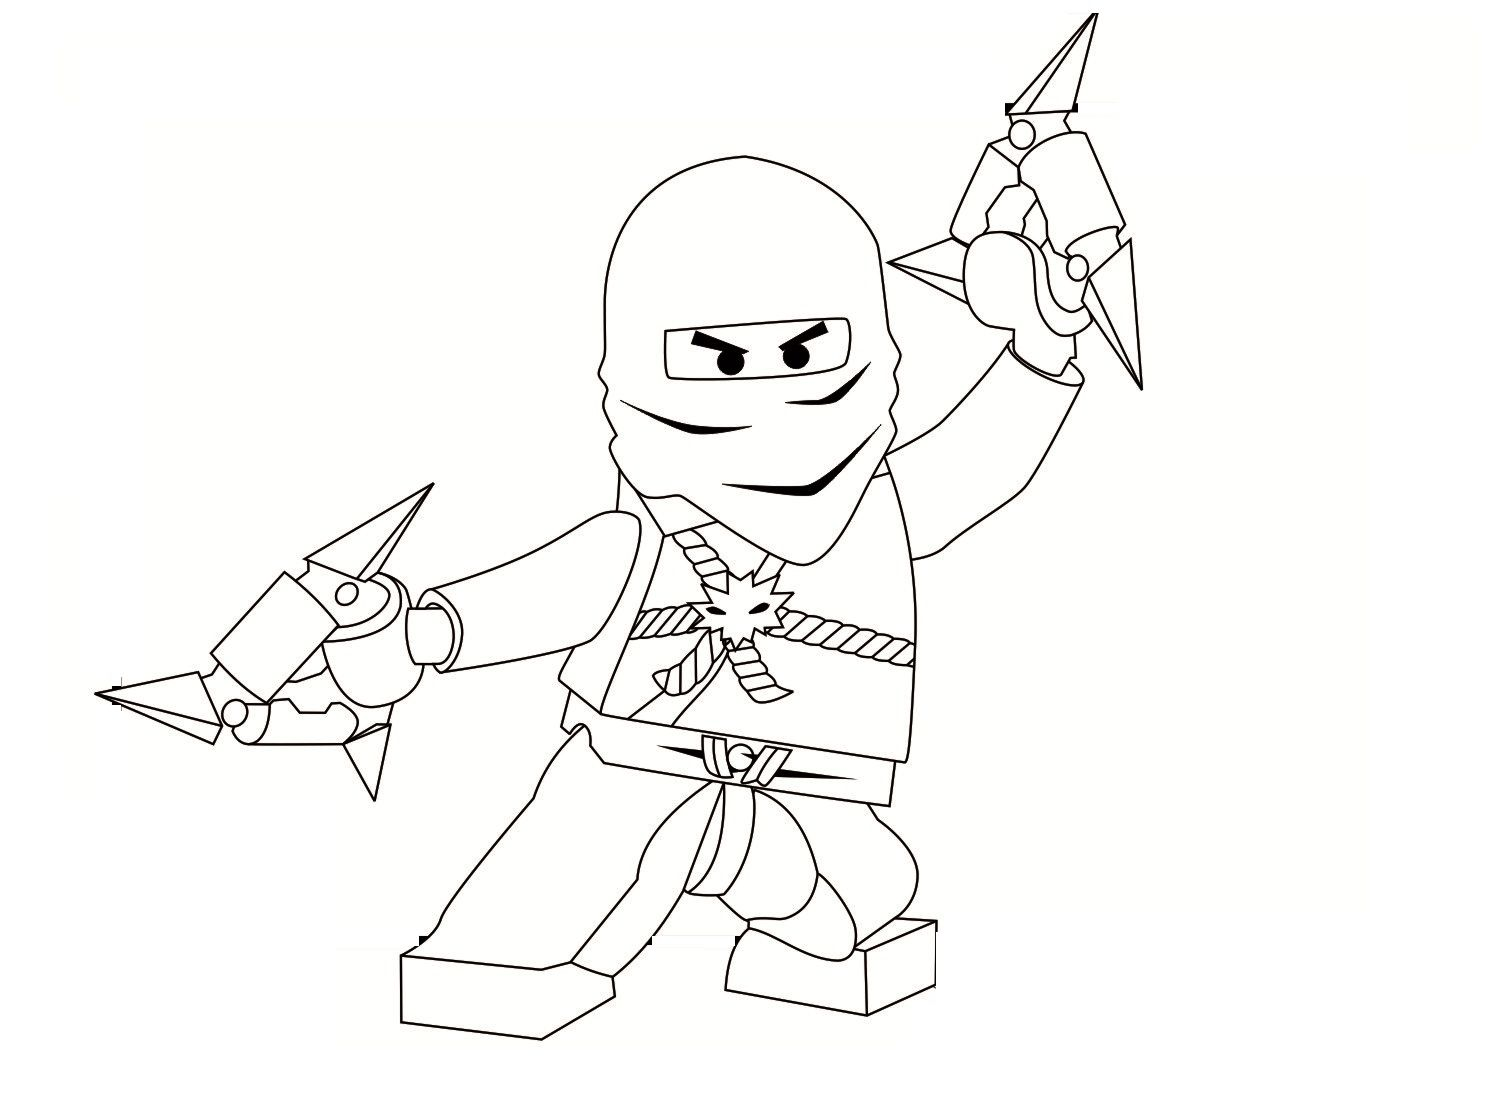 Coloring pages ninjago - Printable Ninjago Coloring Pages